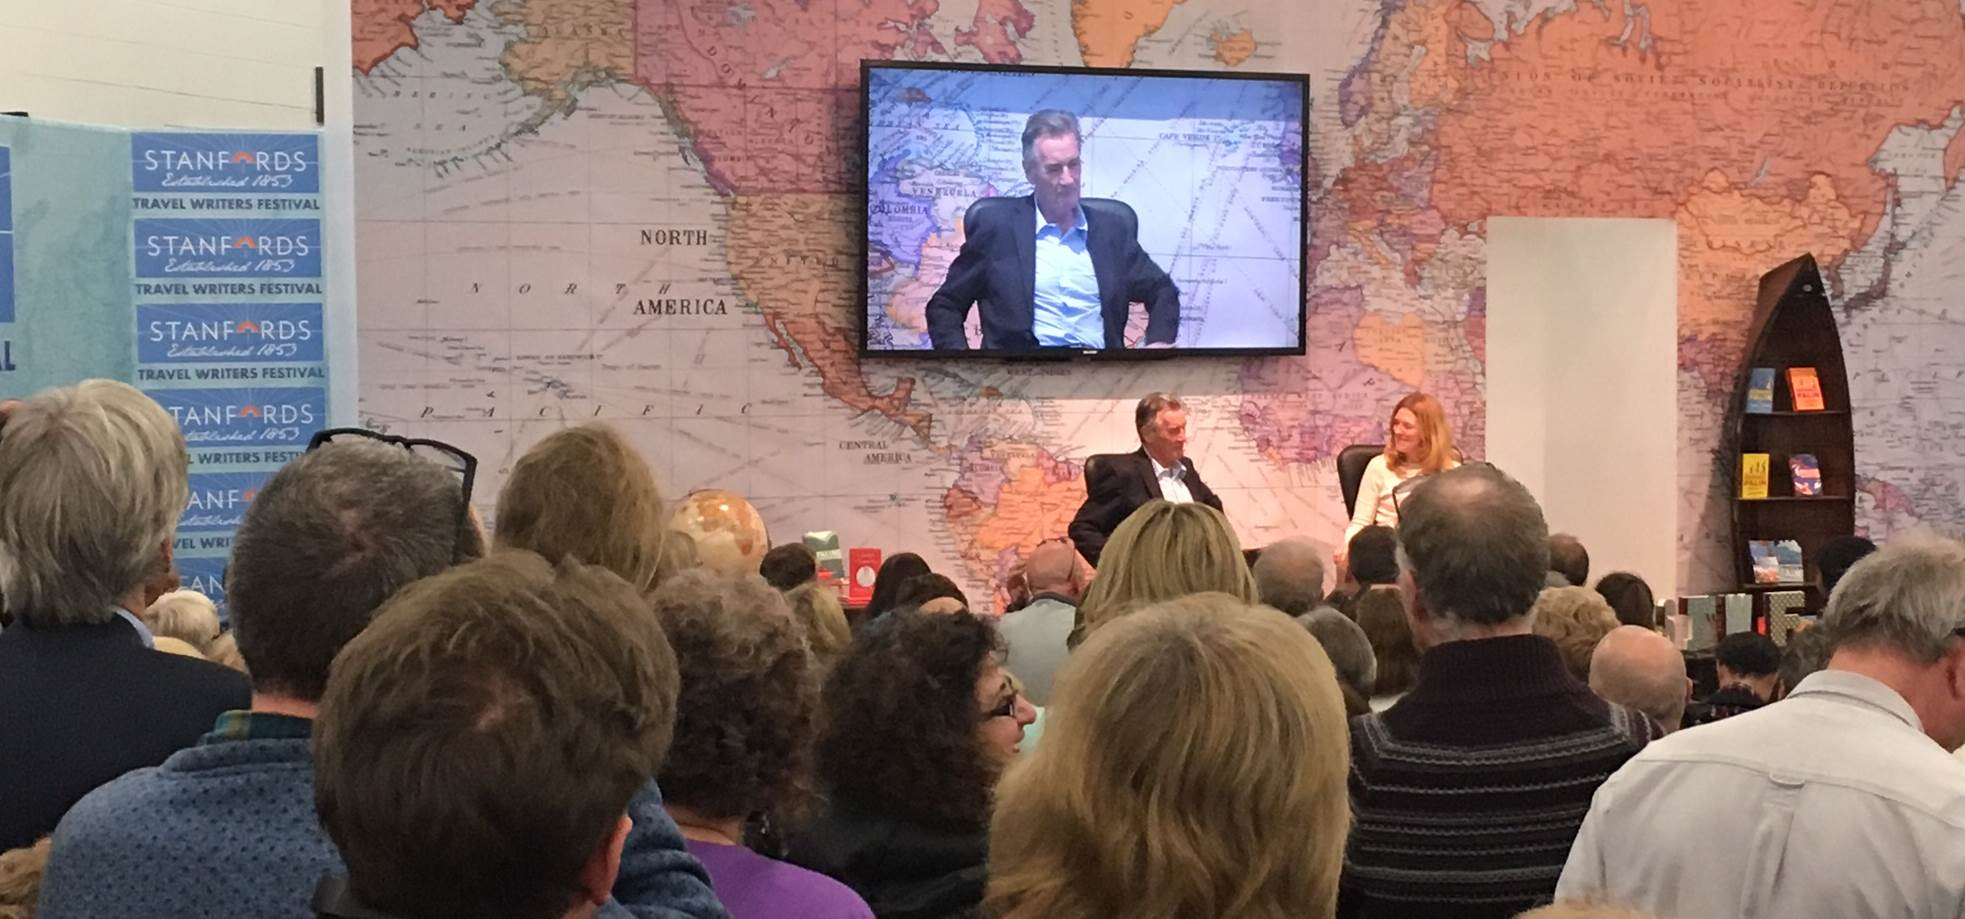 People attending a talk with Michael Palin at the Destinations Travel Show in London